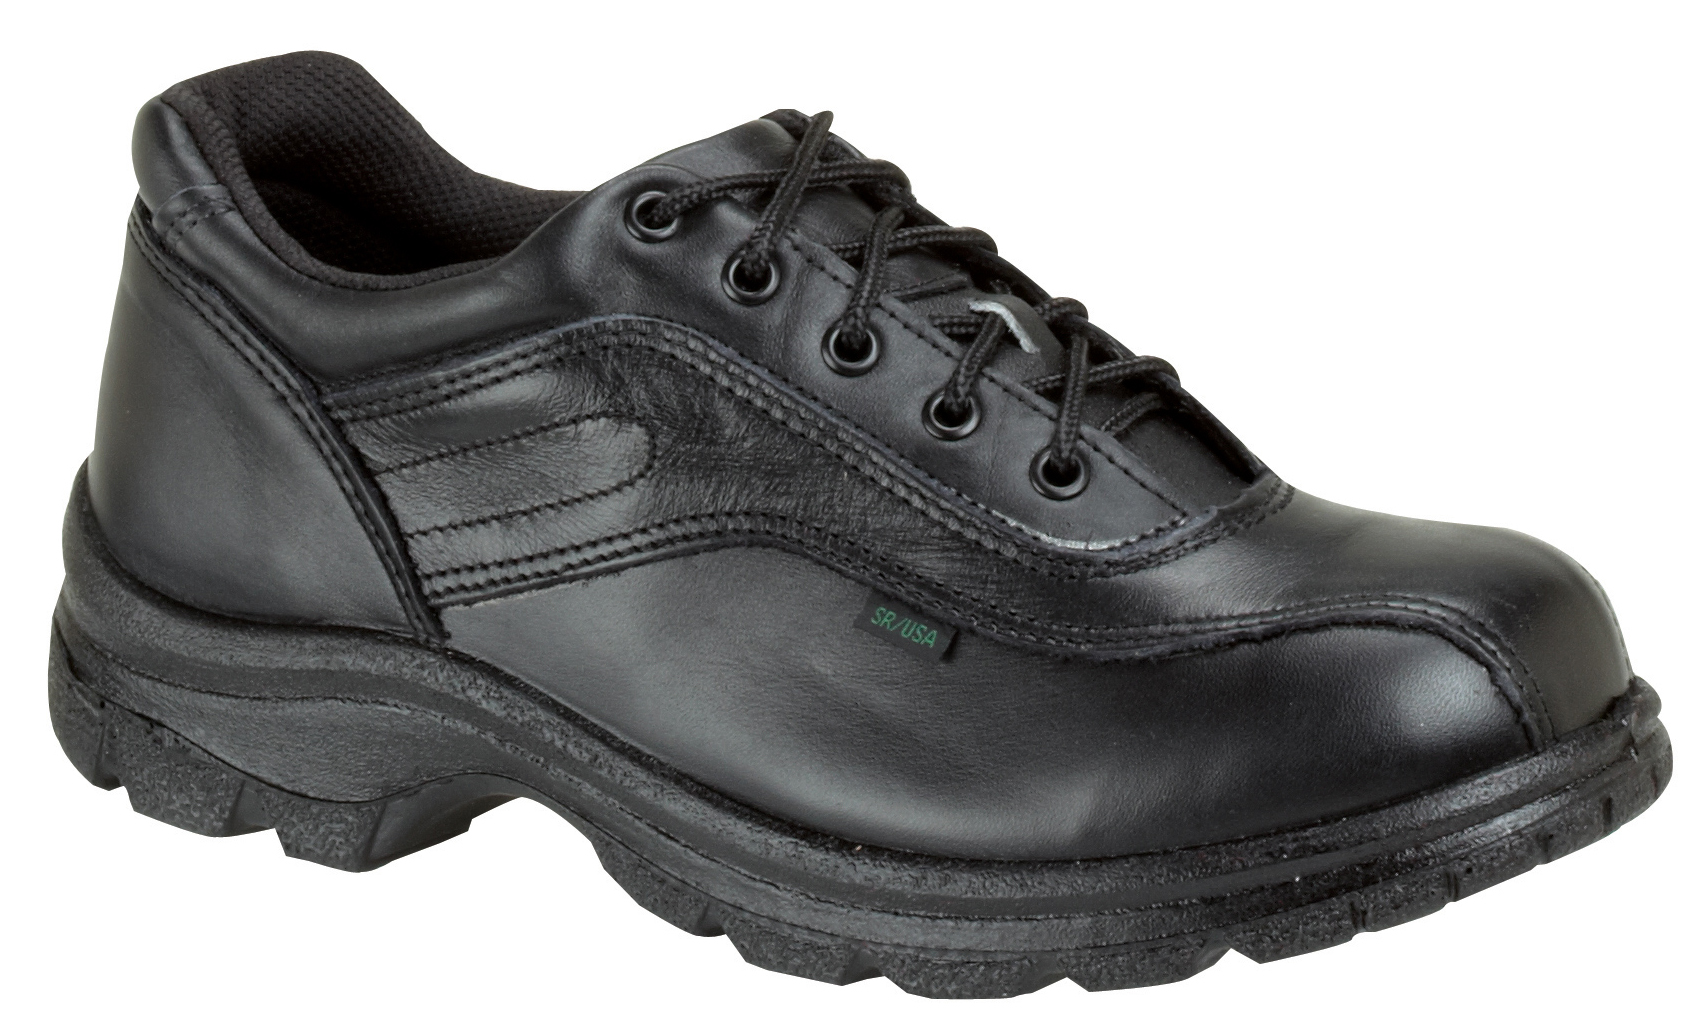 Thorogood Men's Thorogood Uniform Work Shoes Double Track Oxfords Leather Wide (EE) Black 834-6908 at Sears.com